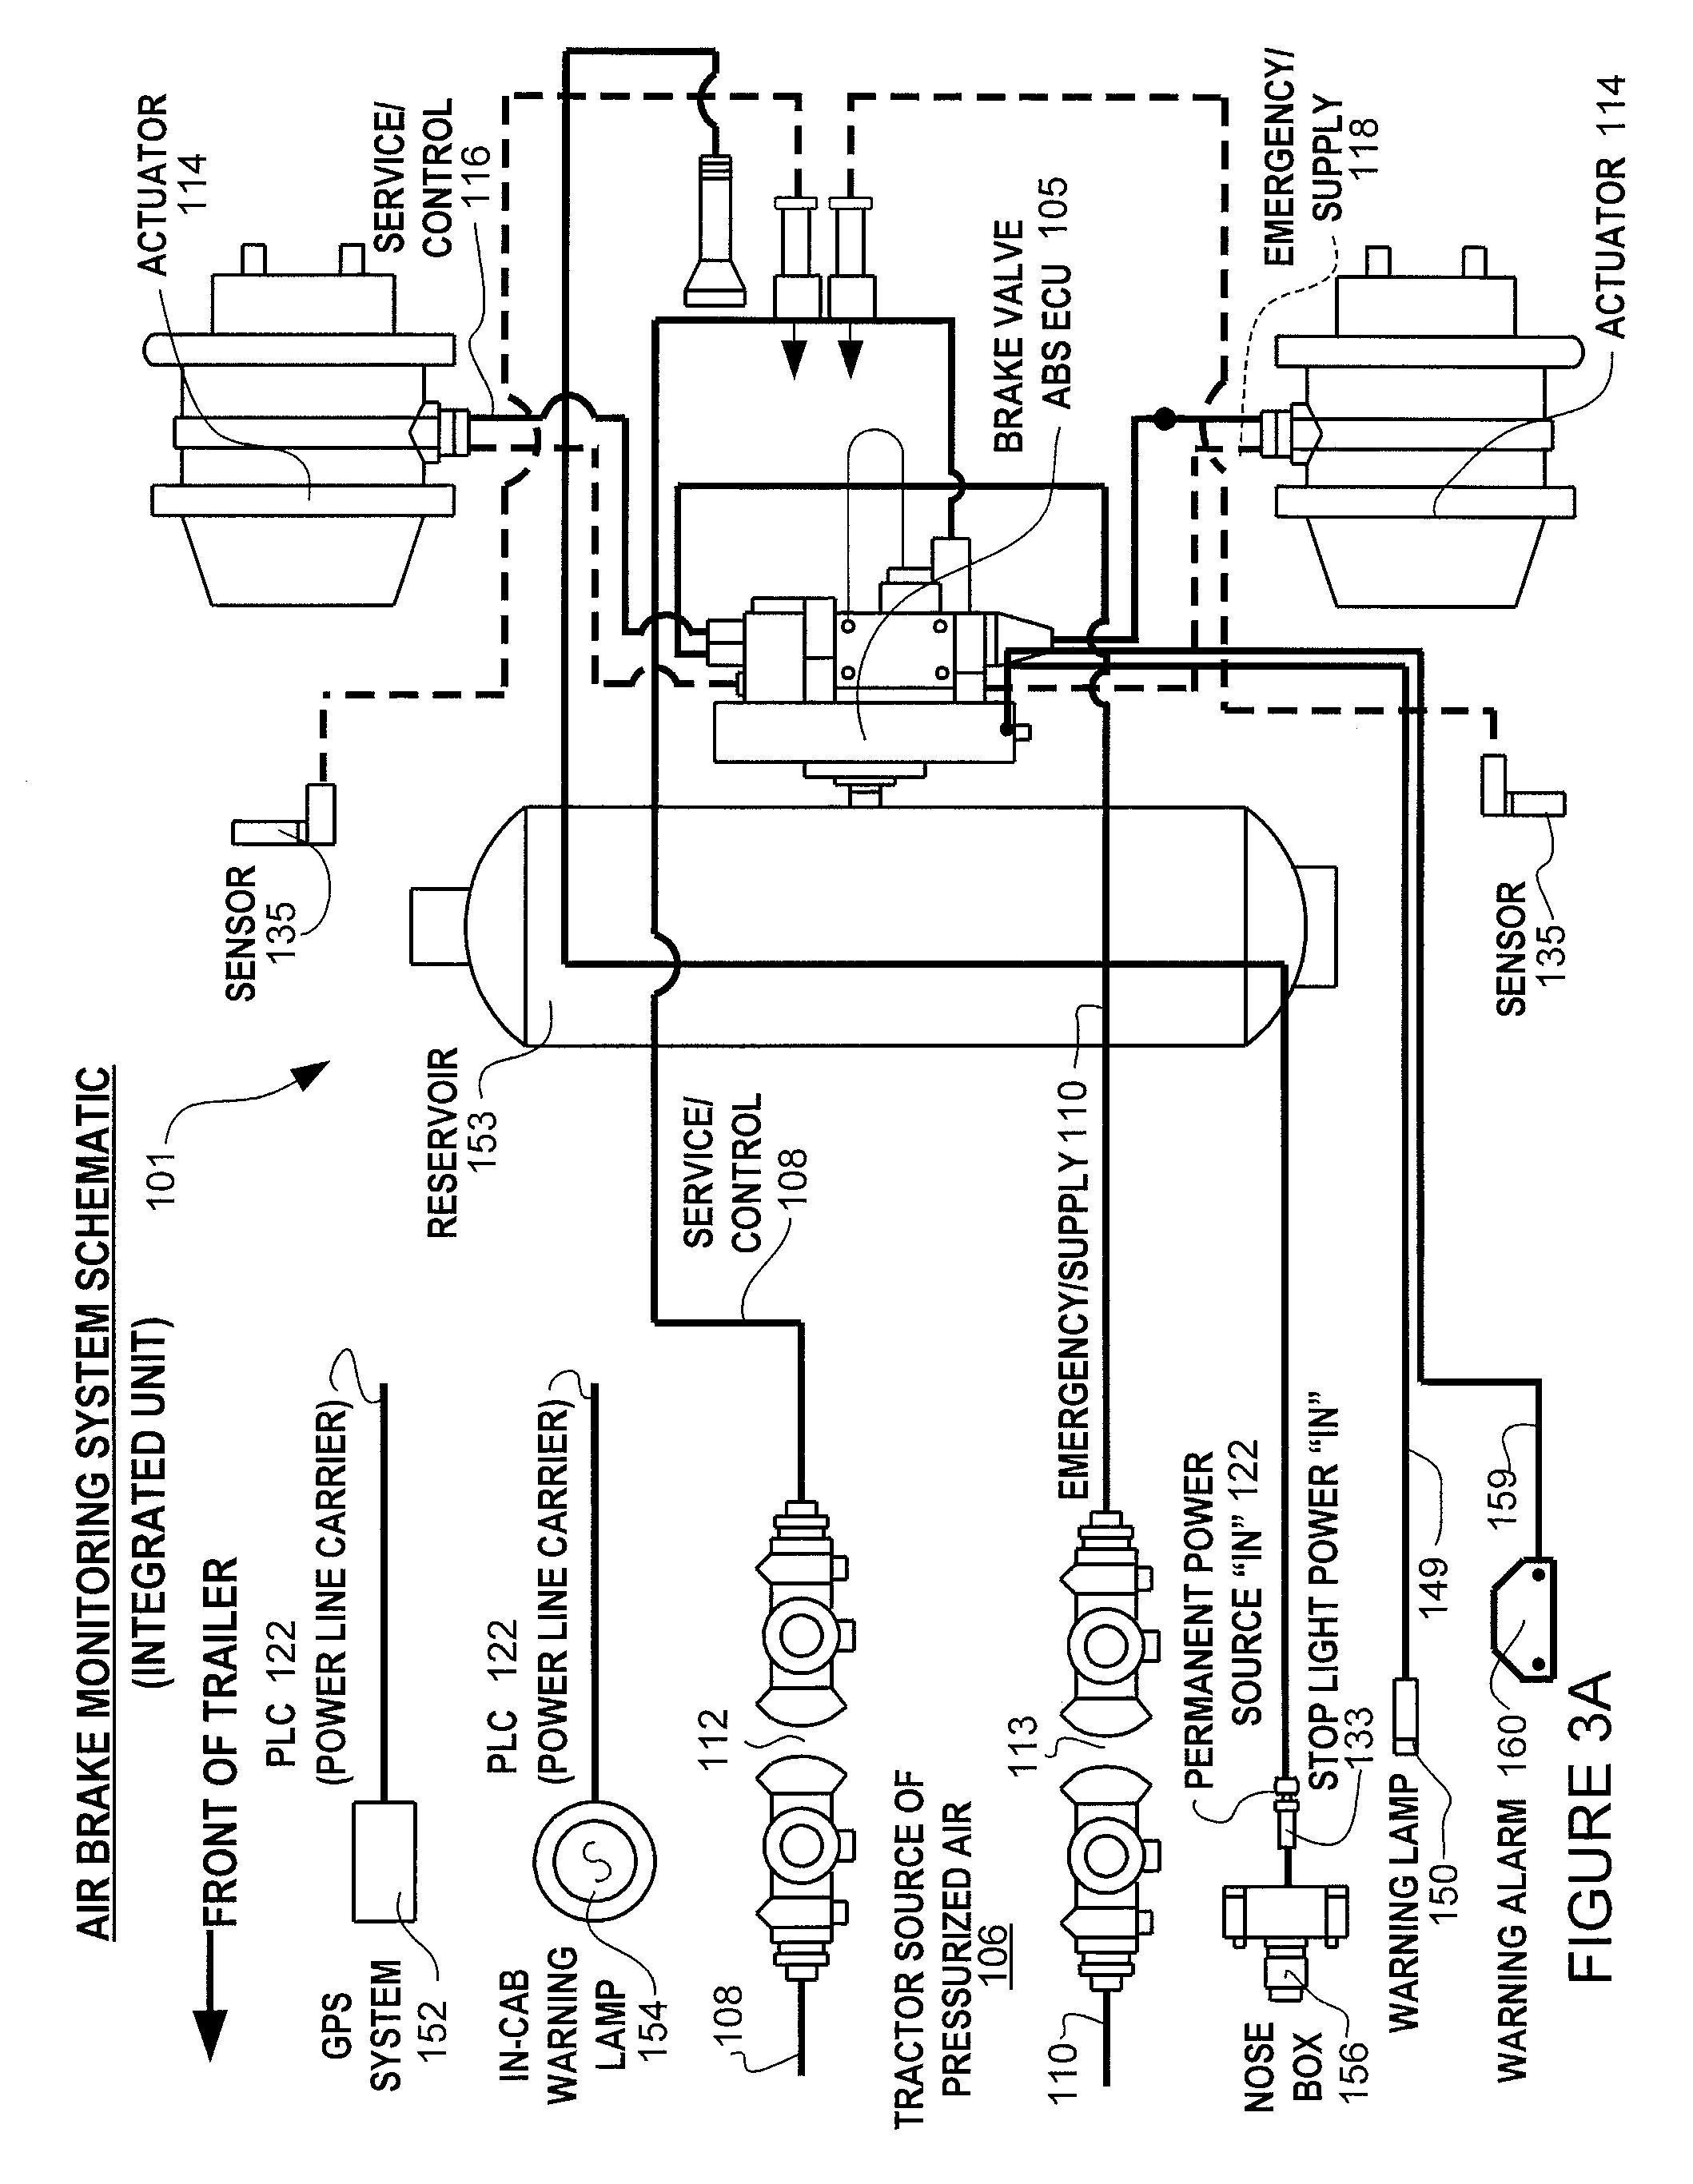 Wiring Diagram For 7 Pin Plug